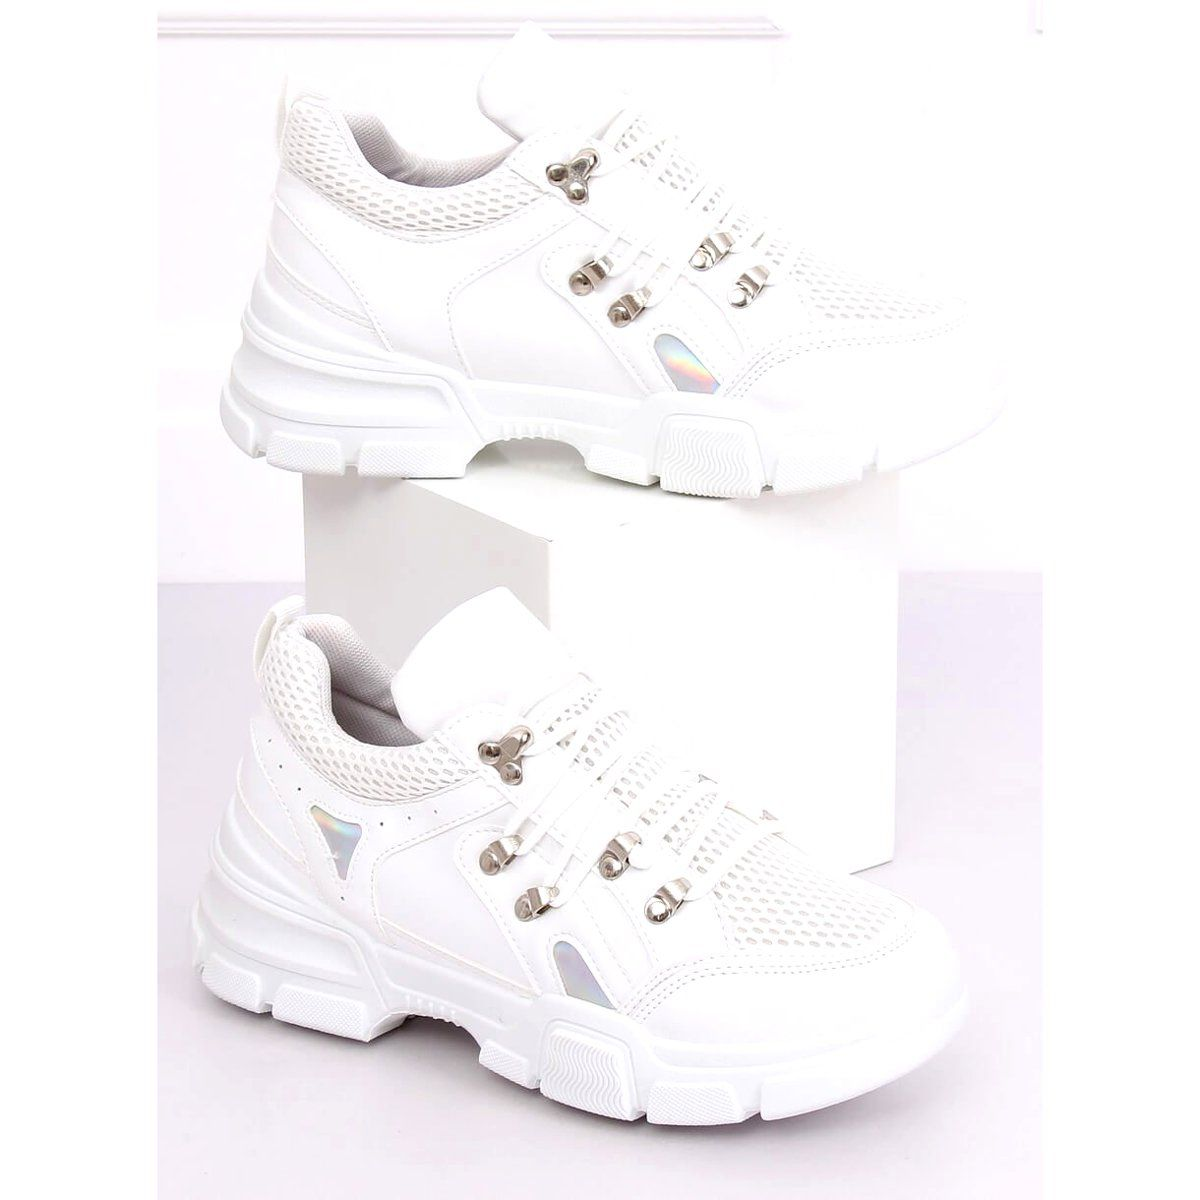 Buty Sportowe Biale Cb19080 White Sports Shoes Shoes Holographic Heels